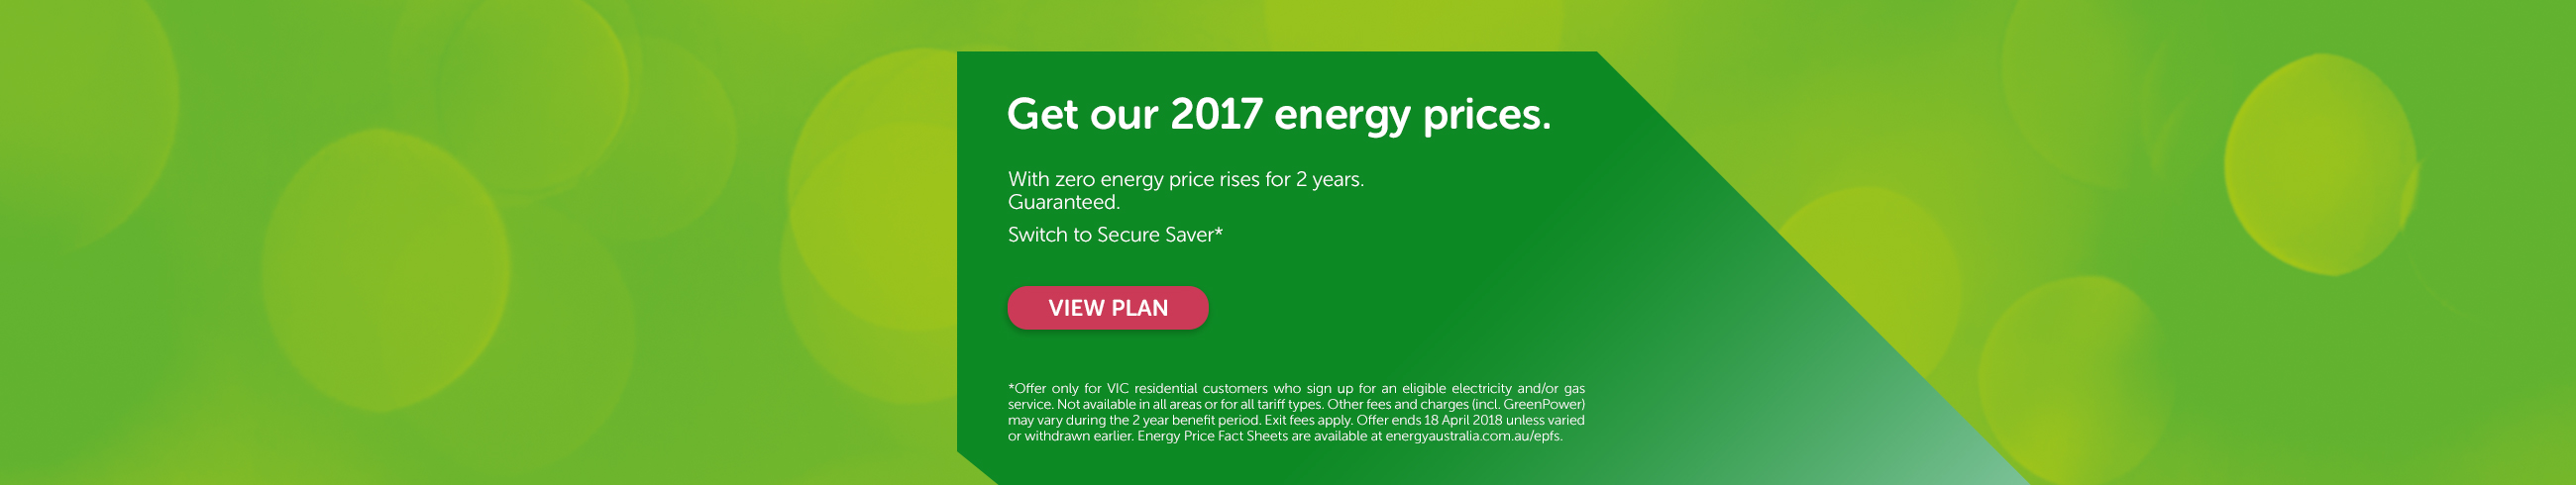 Get our 2017 energy prices.